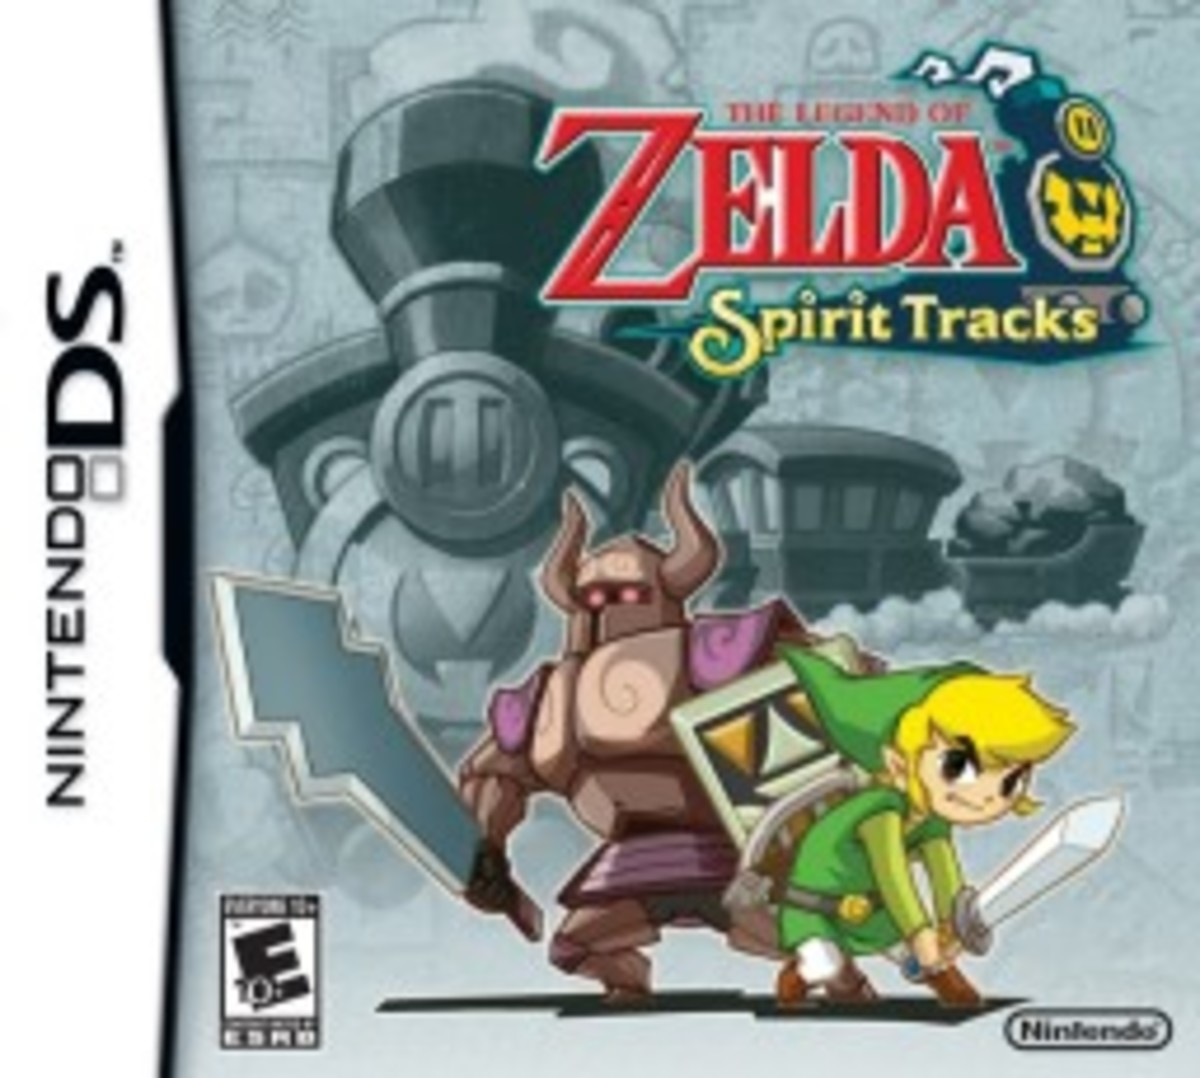 The Legend of Zelda: Spirit Tracks (via Wikipedia)